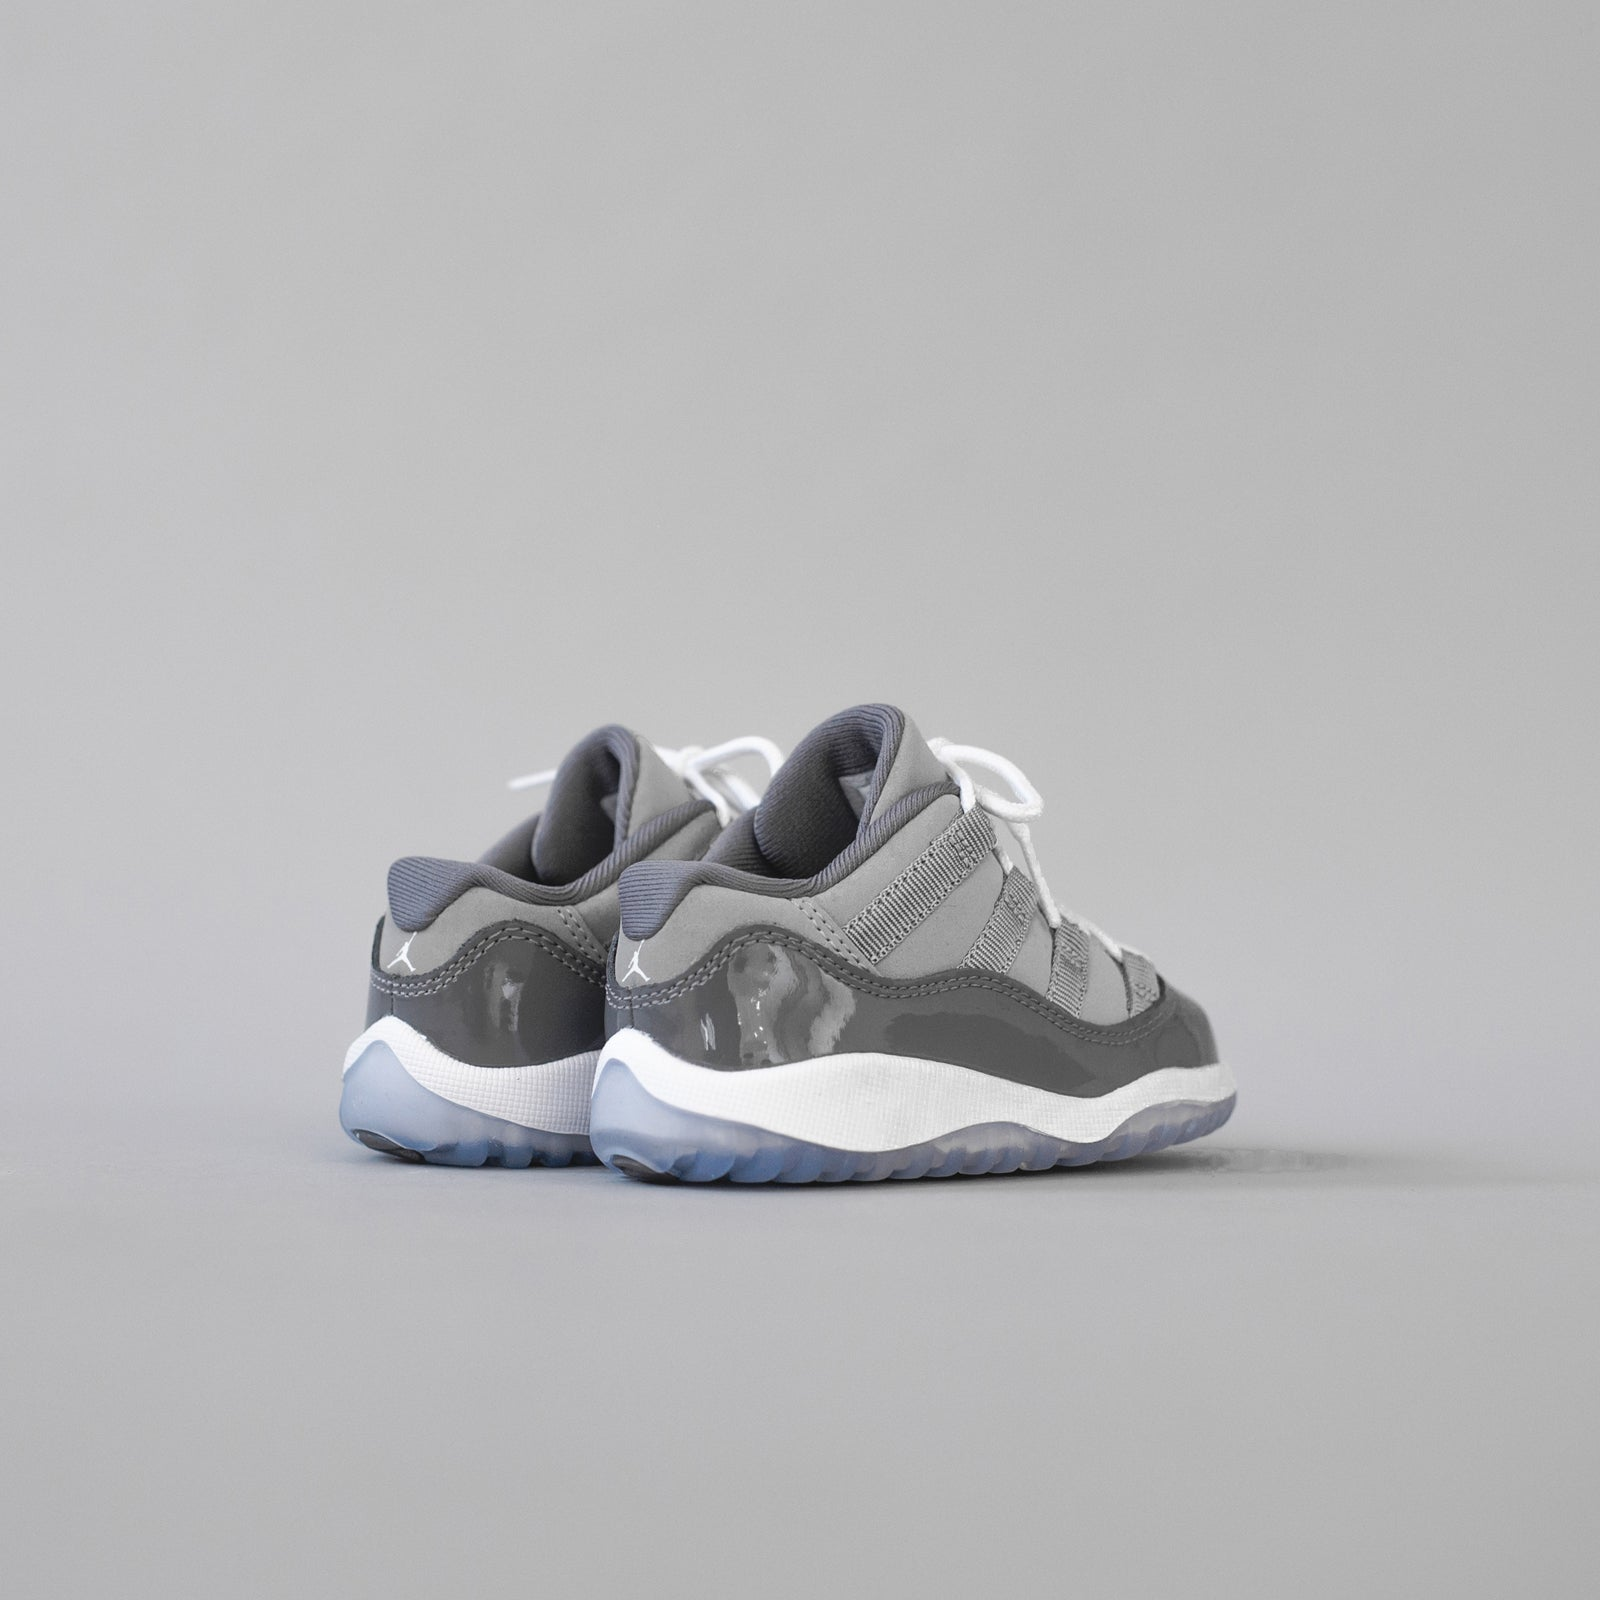 Nike Toddler Air Jordan 11 Retro Low - Medium Grey / White Gunsmoke